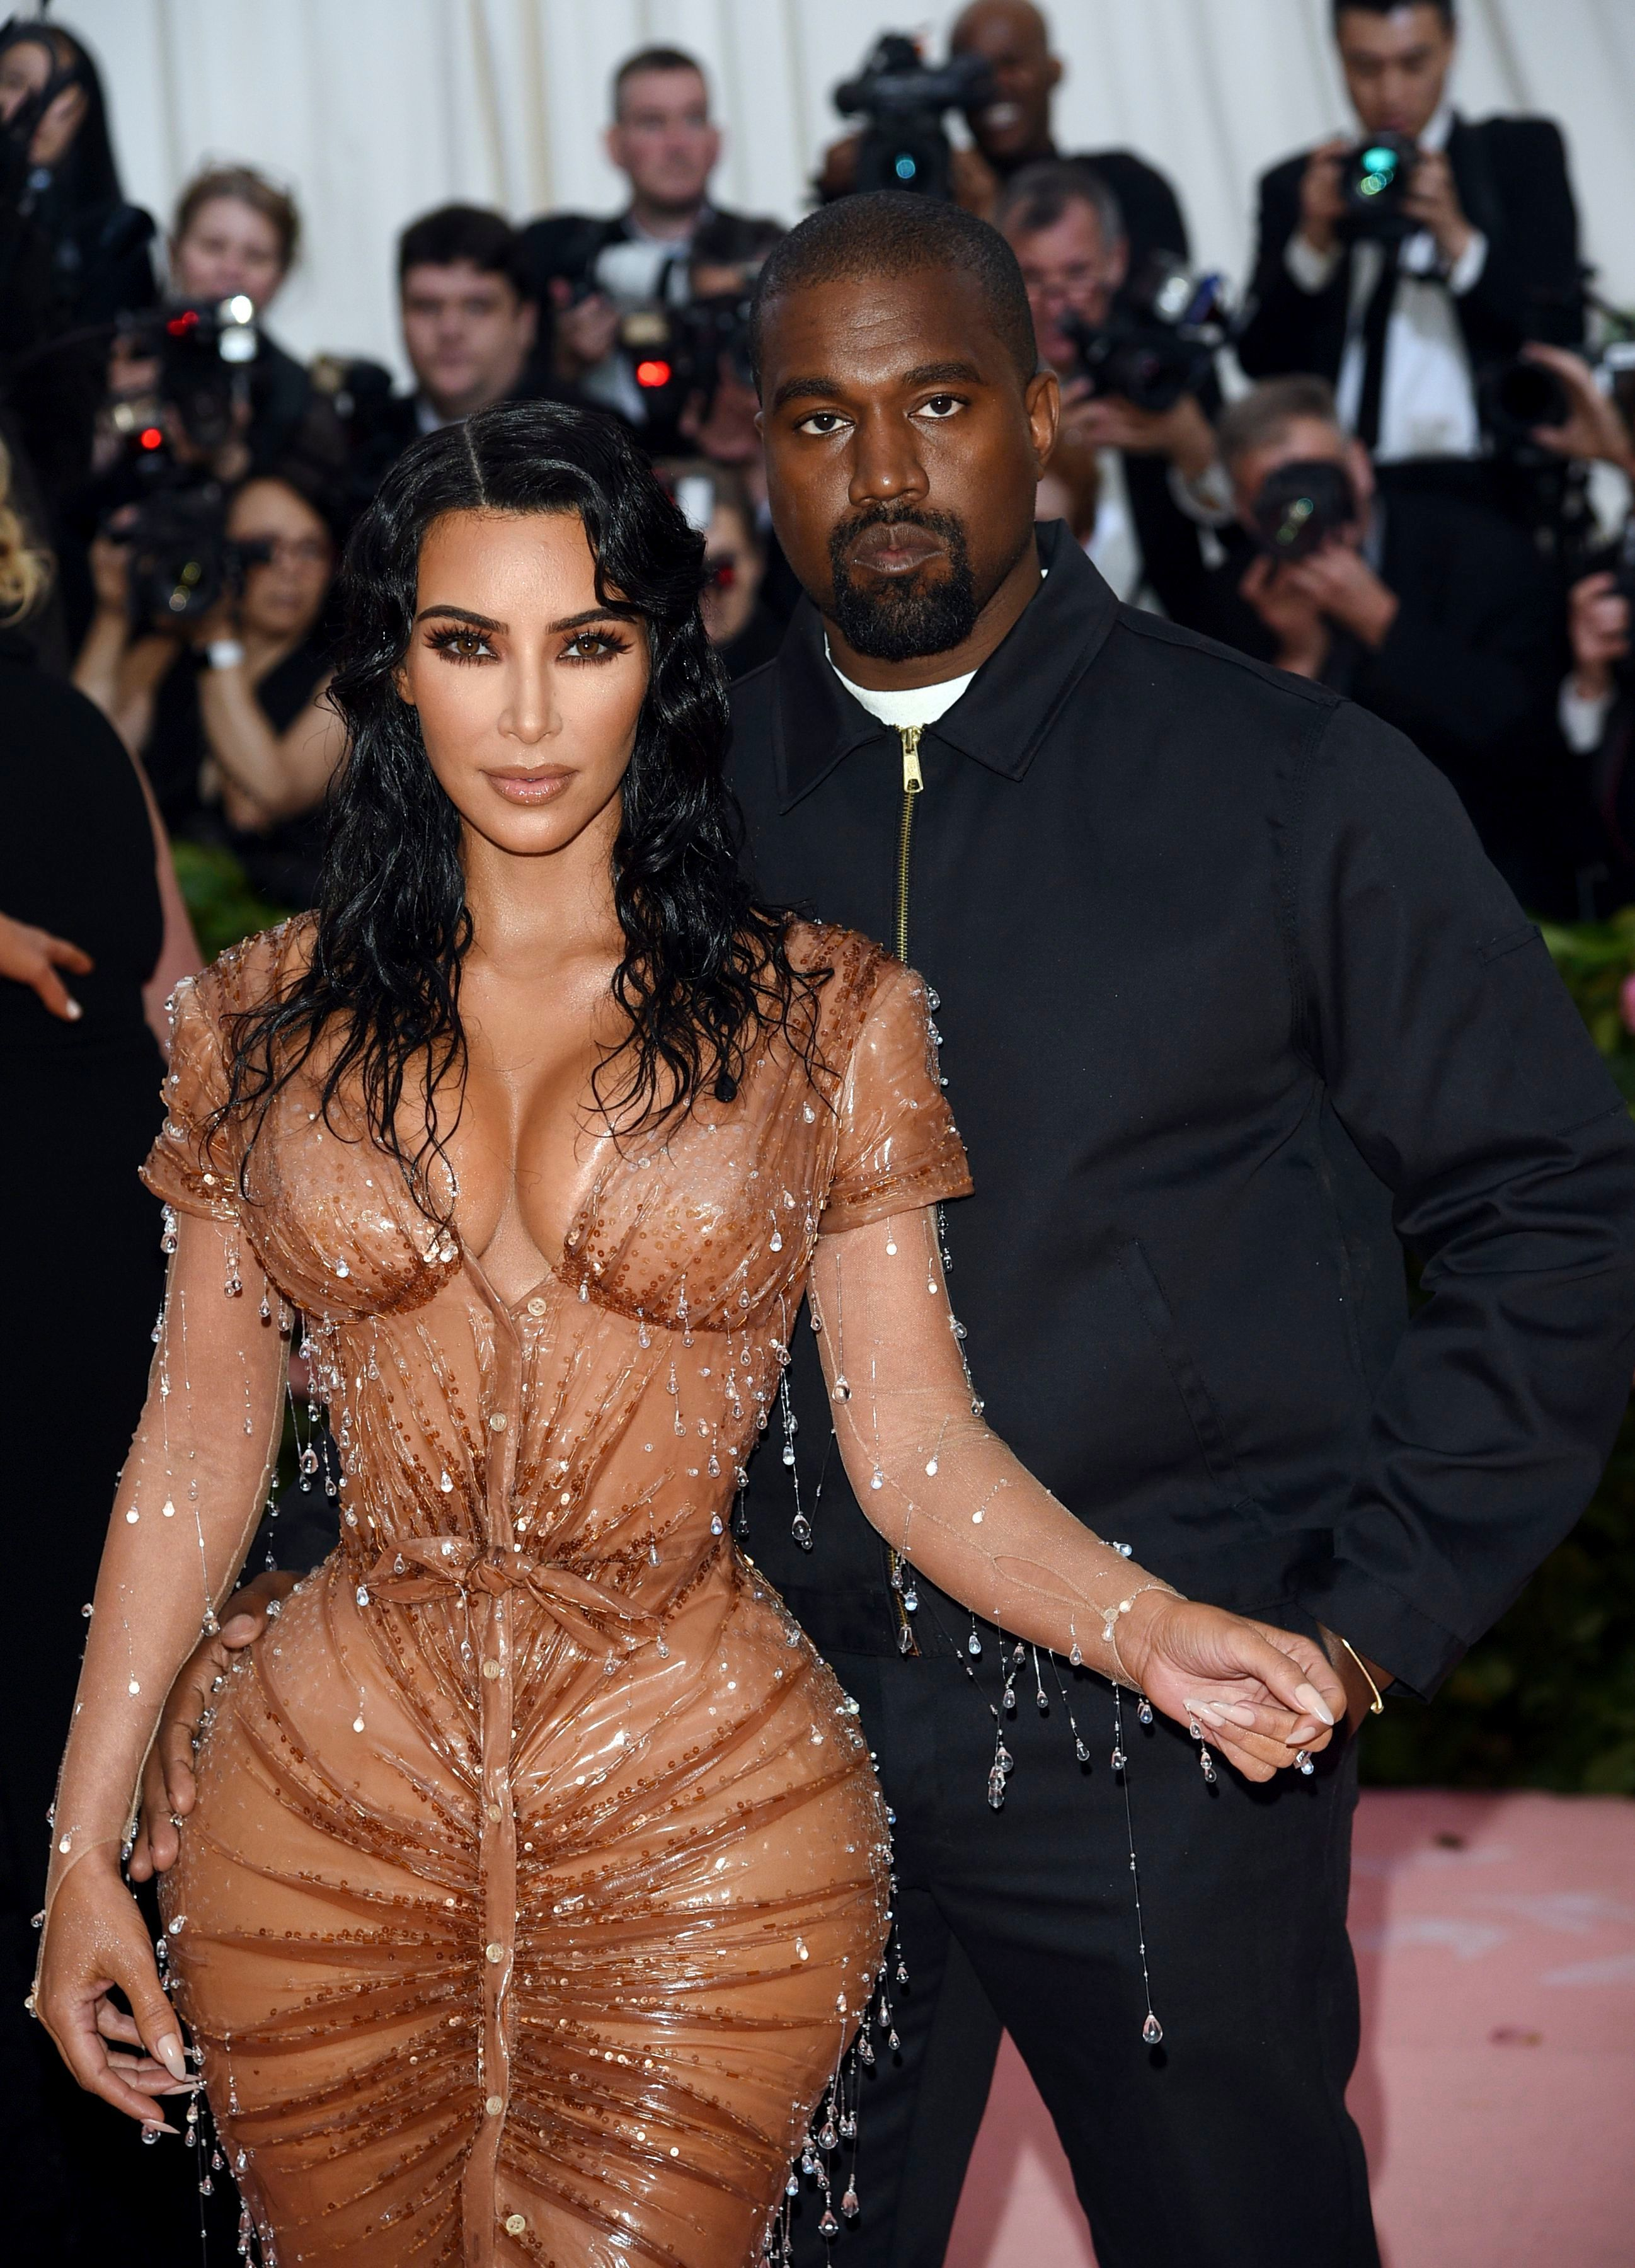 Kim Kardashian and Kanye West attend The Metropolitan Museum of Art's Costume Institute benefit gala in New York City on May 6, 2019.